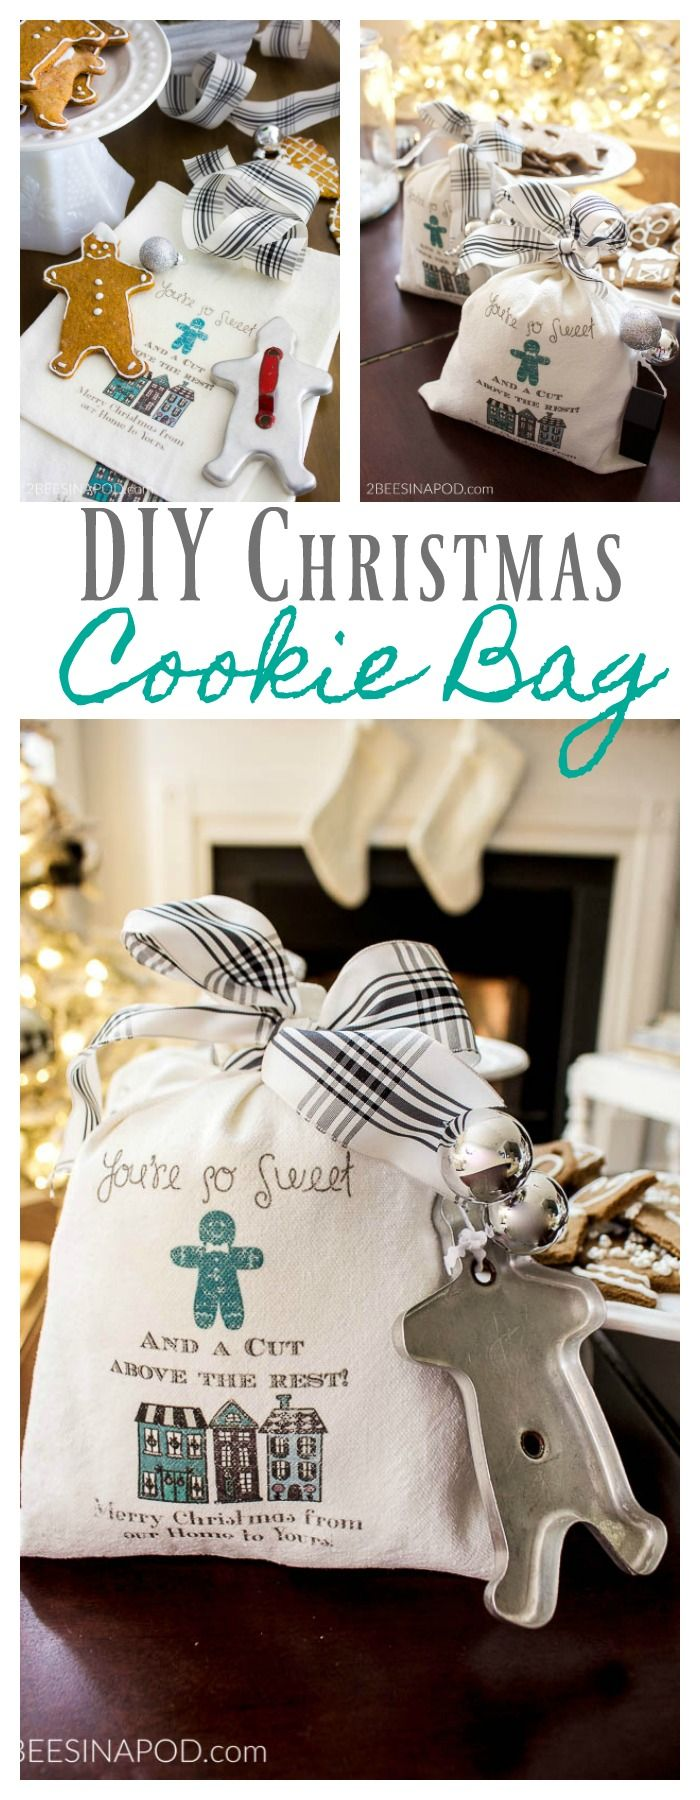 DIY Christmas Cookie Bag for Neighbors and Friends. Christmas gift. Christmas cookie exchange. Christmas neighbor gift. Christmas friend gift. Christmas cookie packaging. Christmas cookie recipe. Vintage cookie cutter. Gingerbread man.